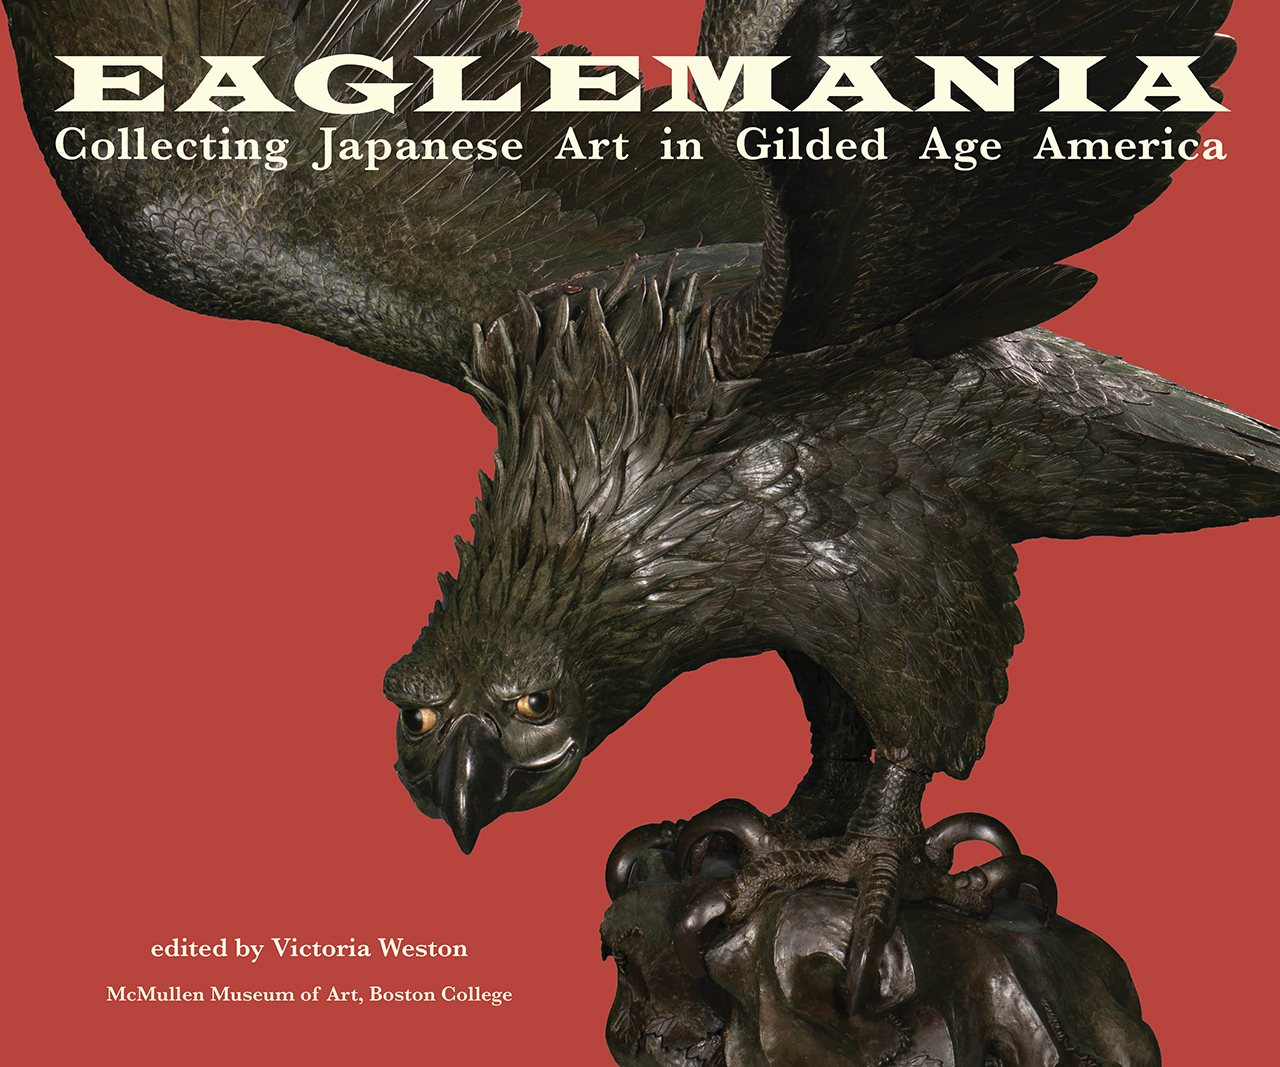 Eaglemania: Collecting Japanese Art in Gilded Age America